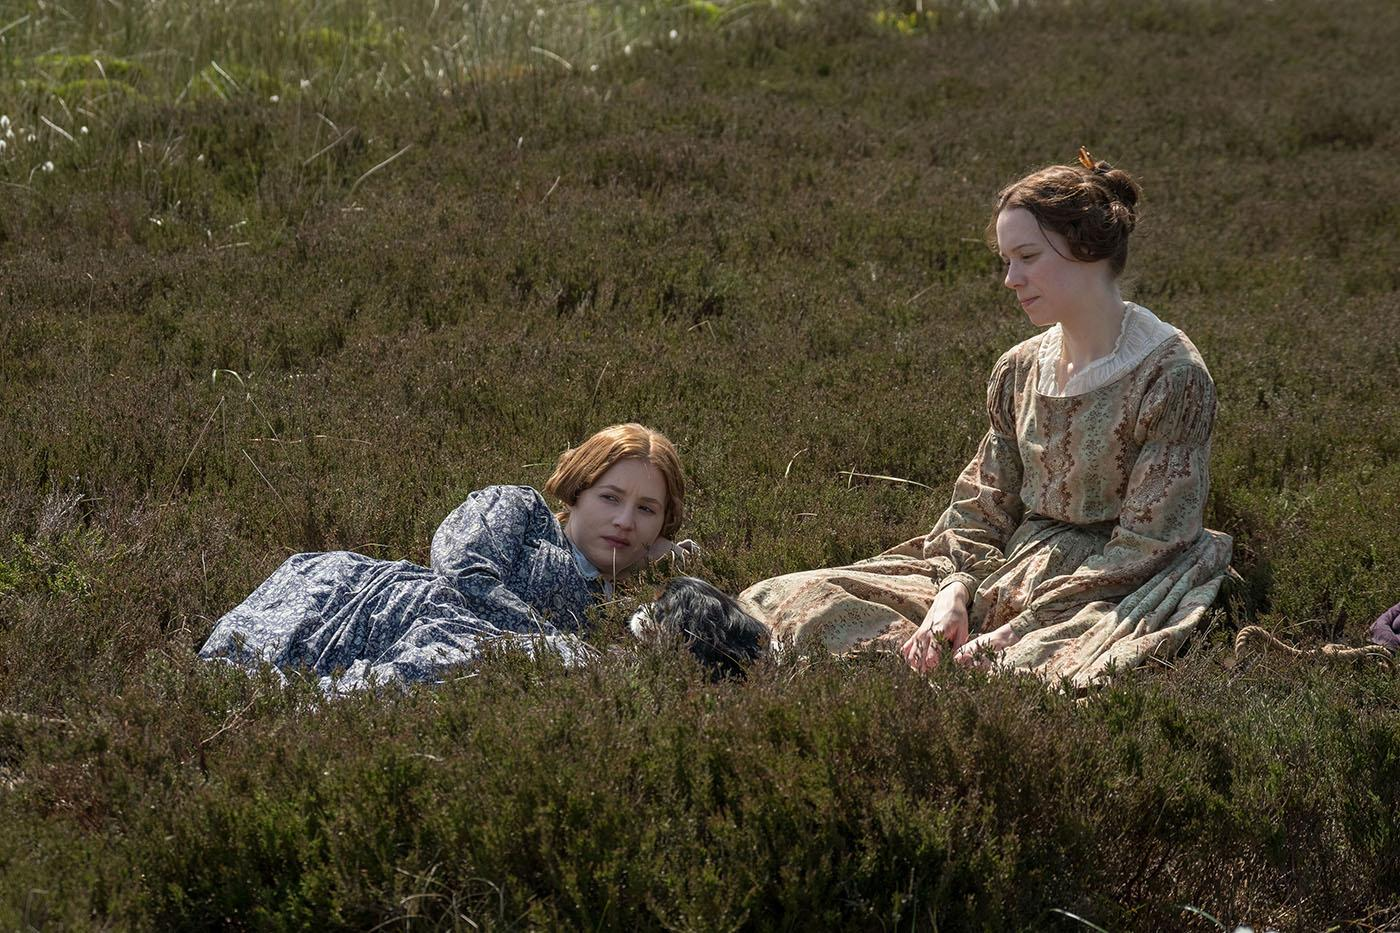 The Brontë sisters in the biopic 'To Walk Invisible.' Photo: Matt Squire/BBC and MASTERPIECE